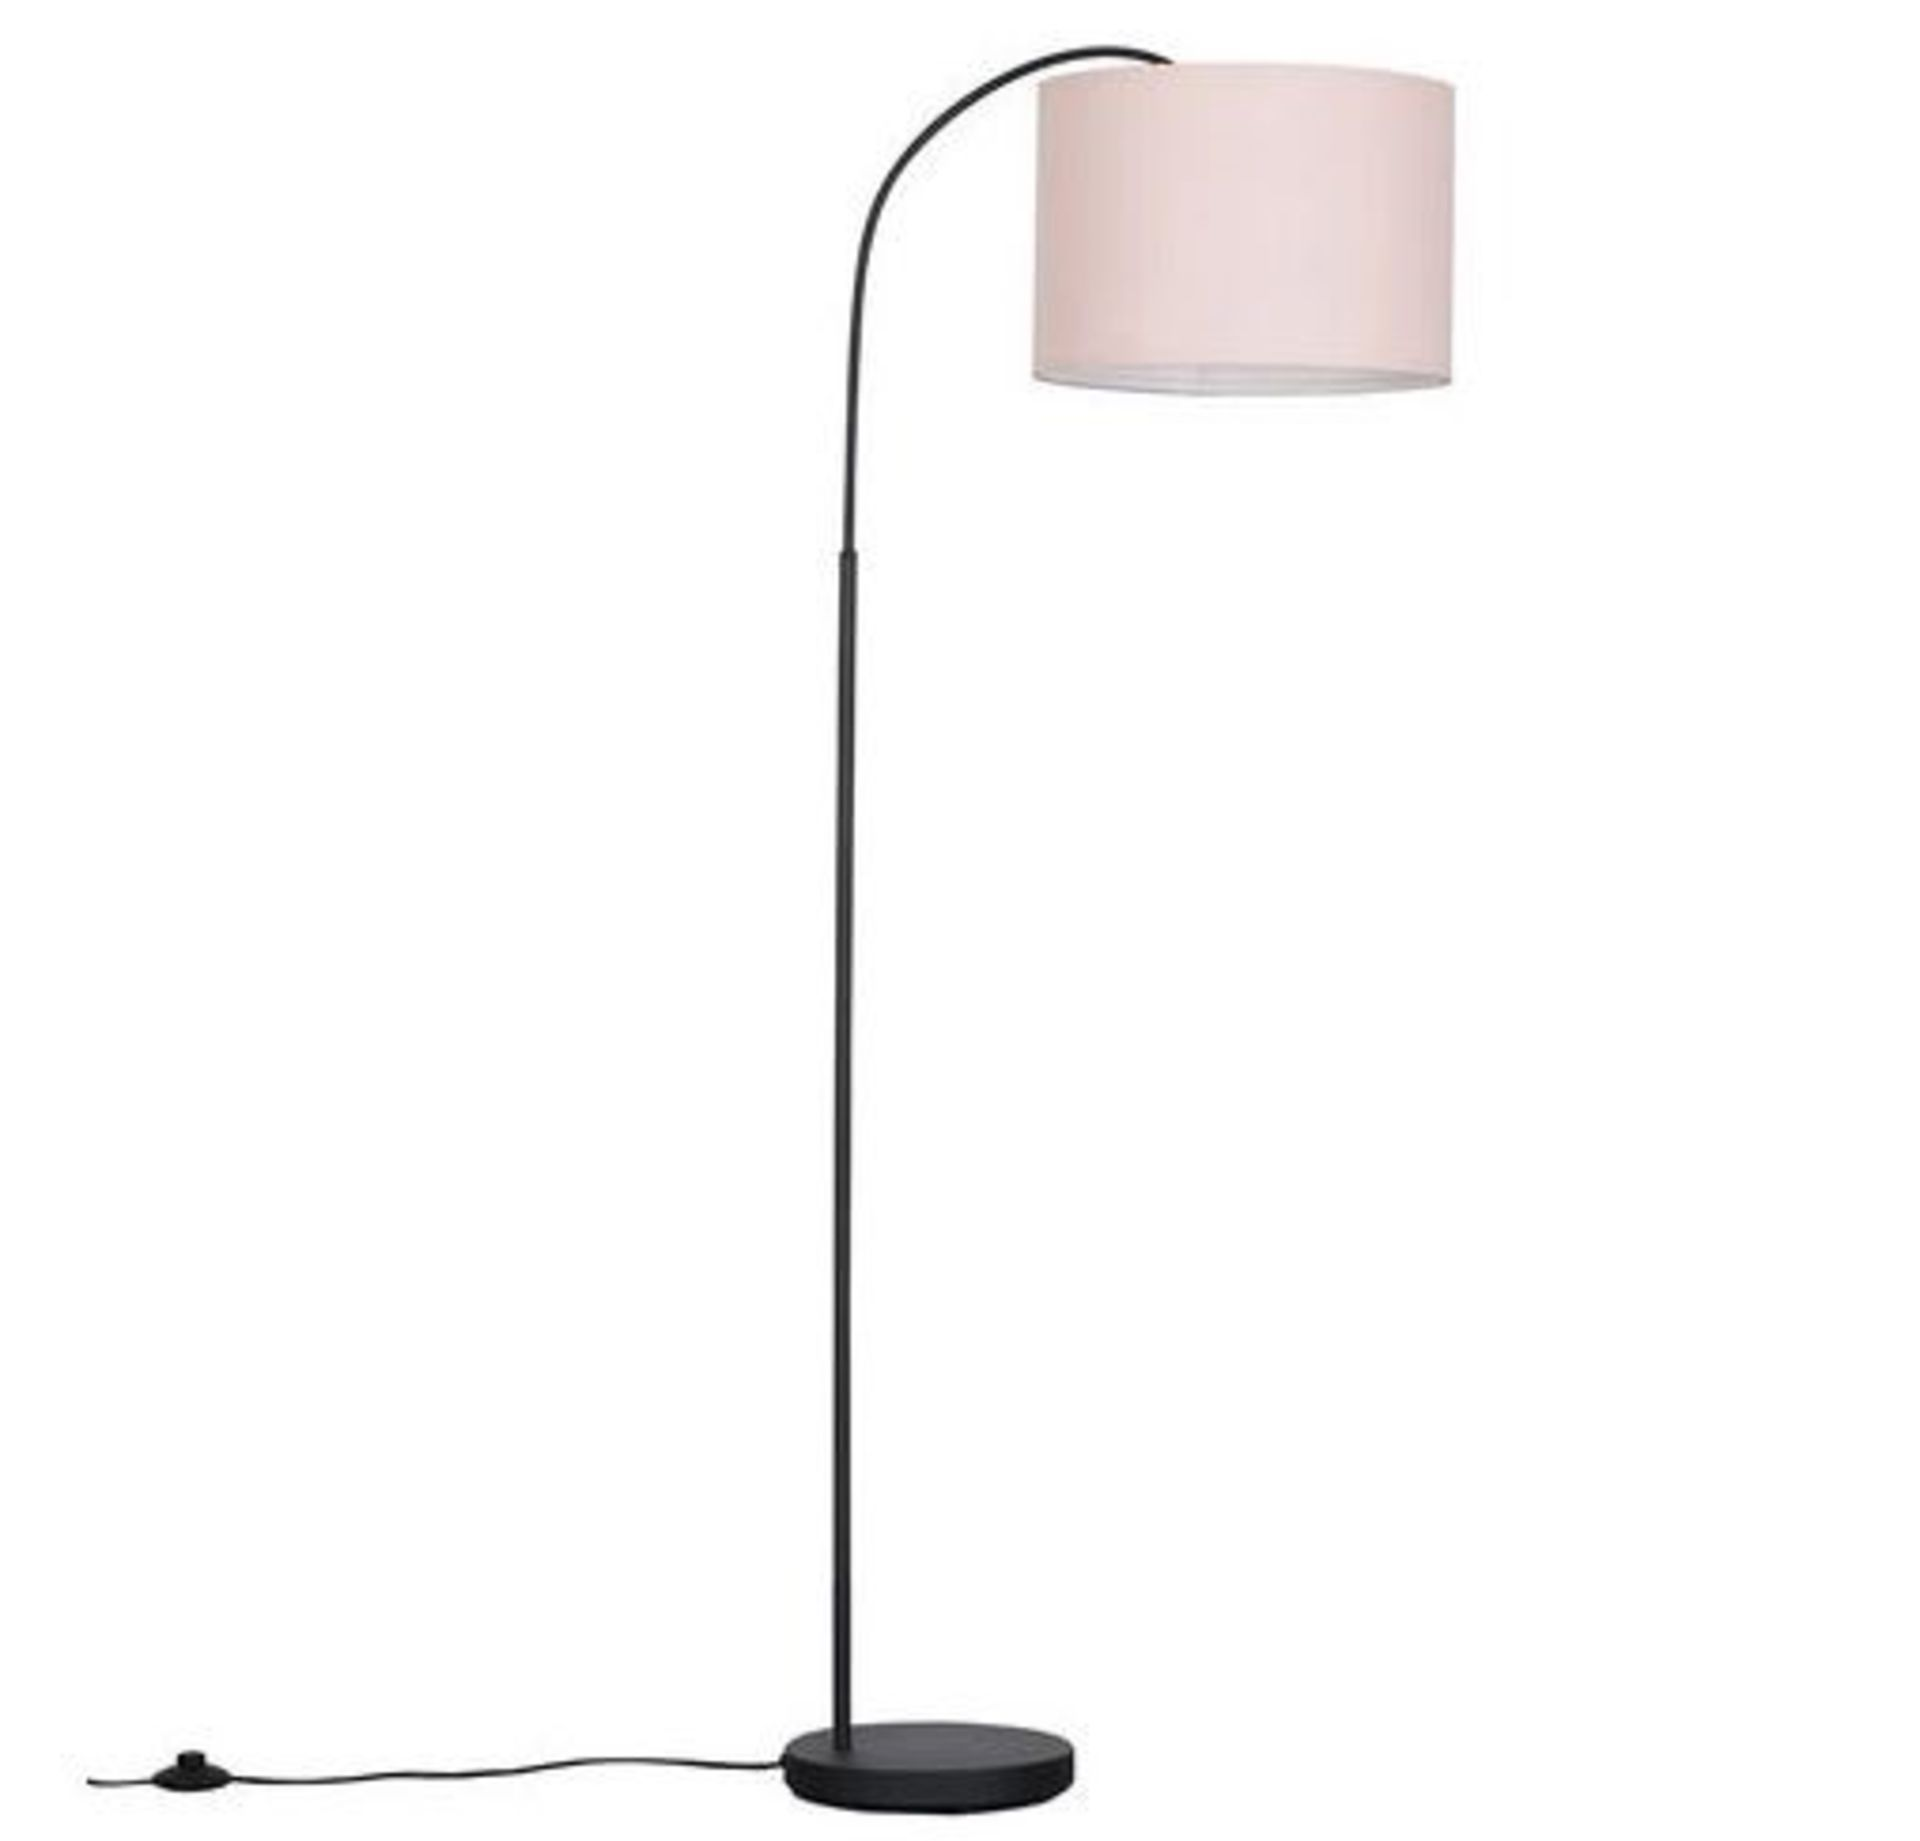 DU BOSE CURVA 210CM ARCHED/ARC FLOOR LAMP. BULB INCLUDED